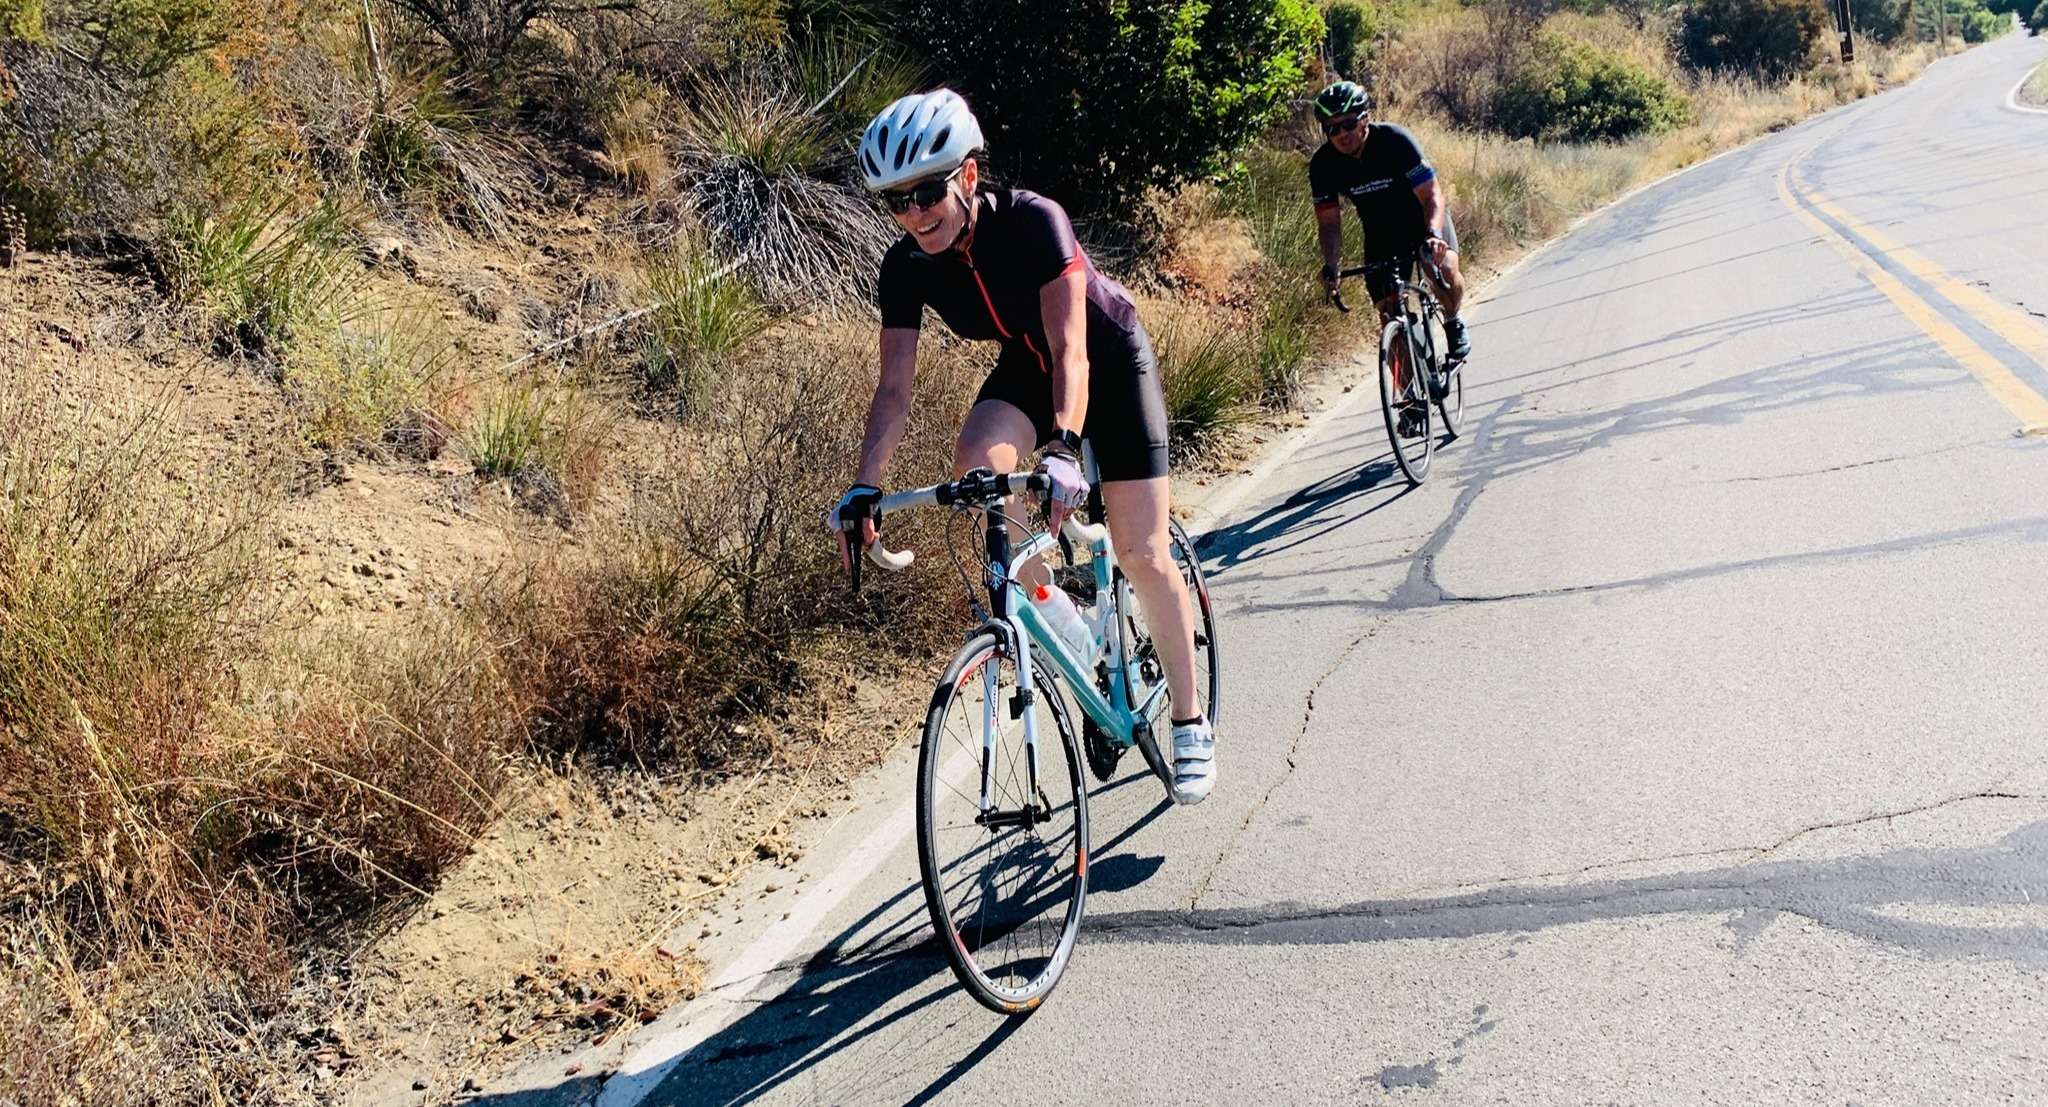 Two cyclists ride on a paved road